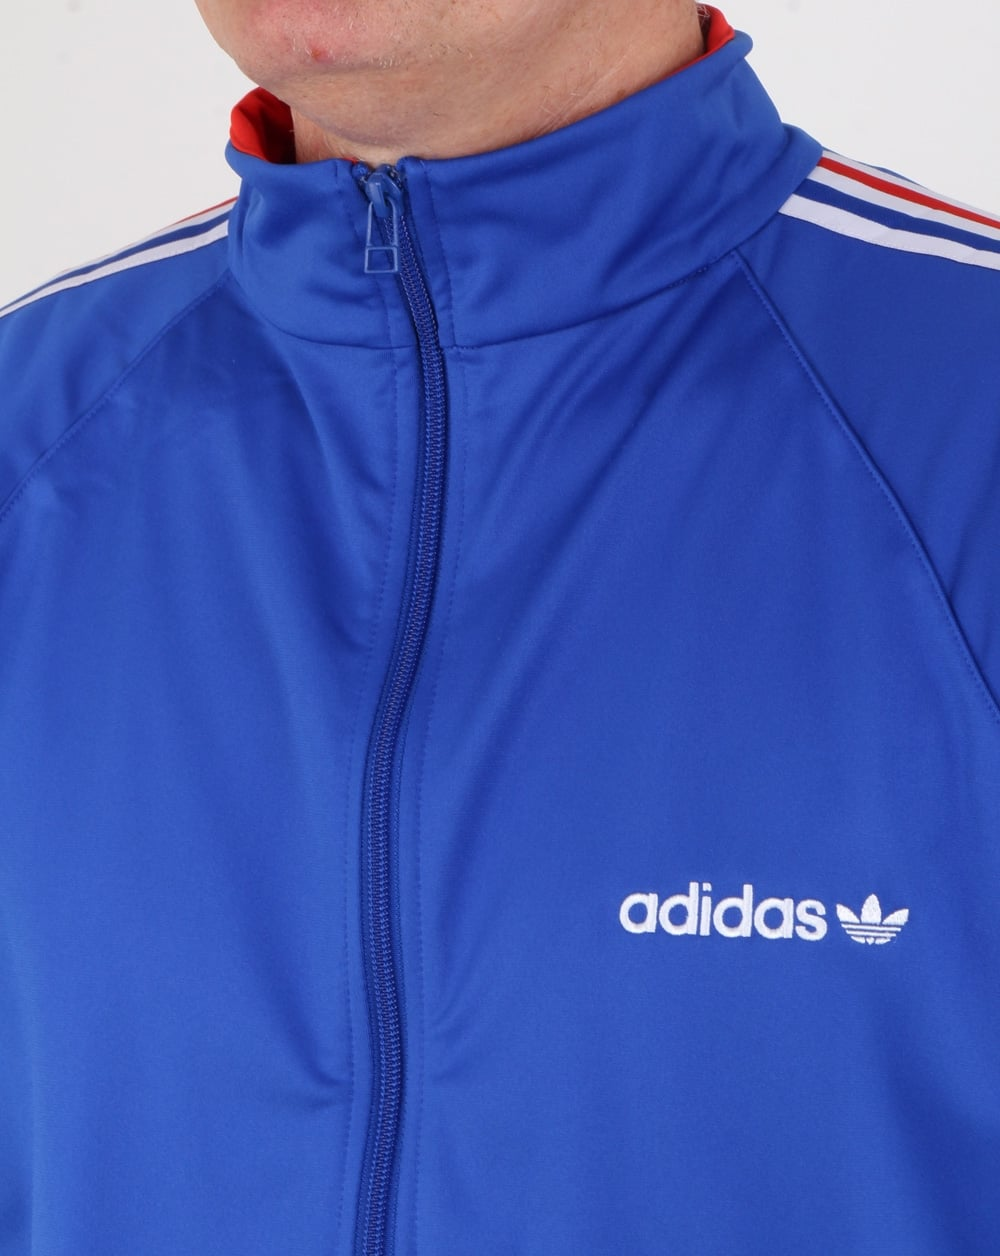 adidas originals aloxe track top bold bluewhite